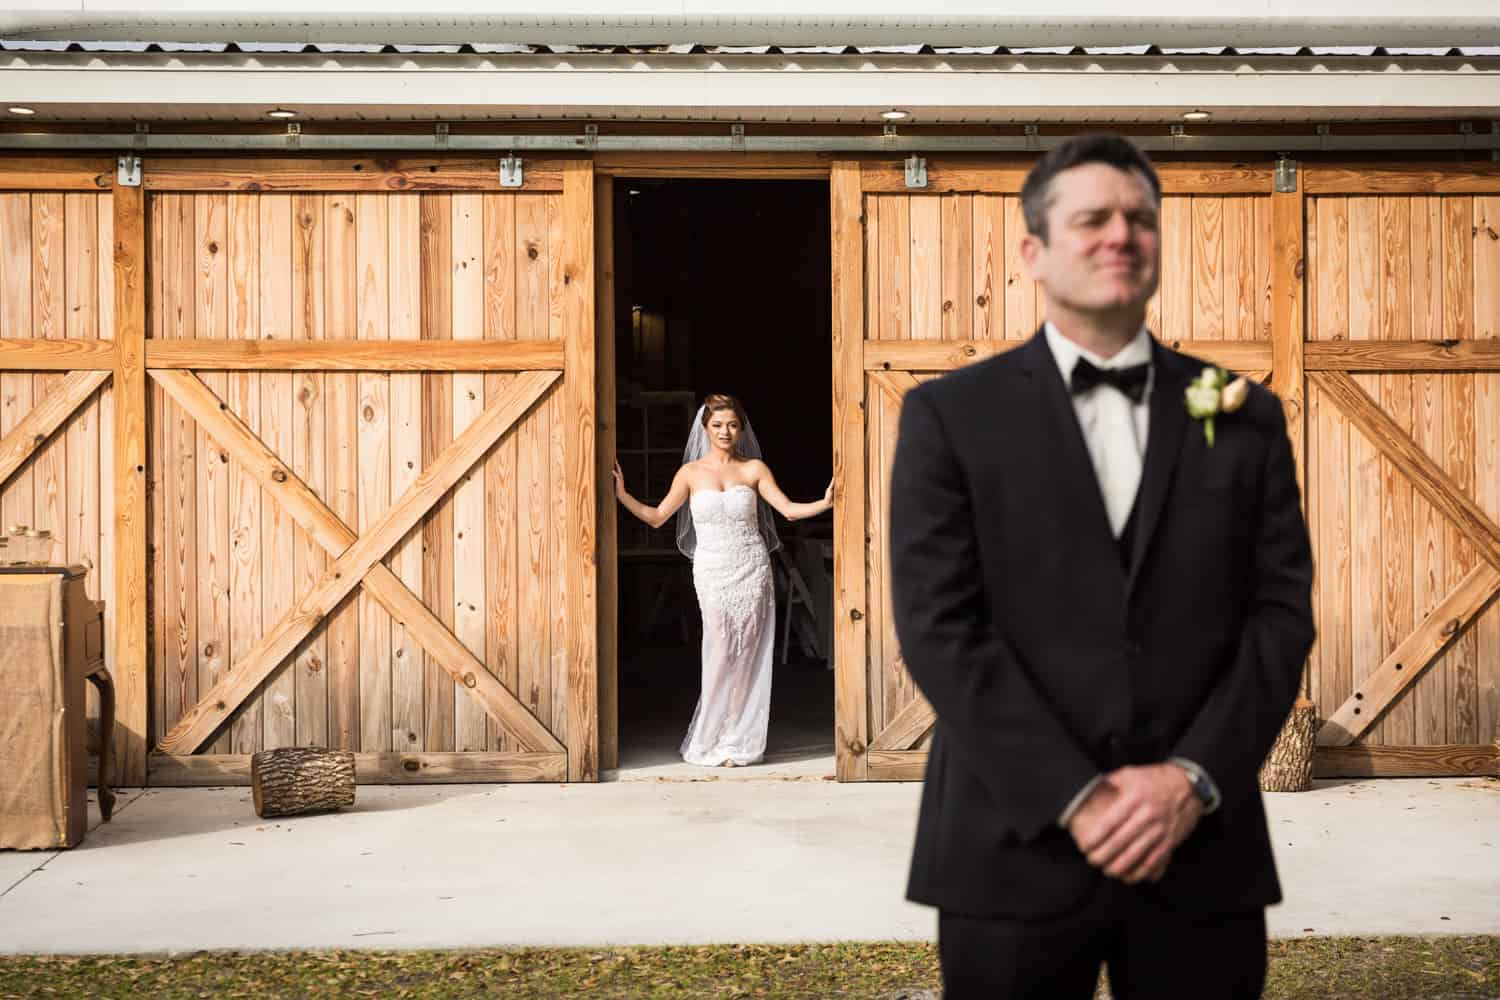 Bride looking through barn door at groom with back turned